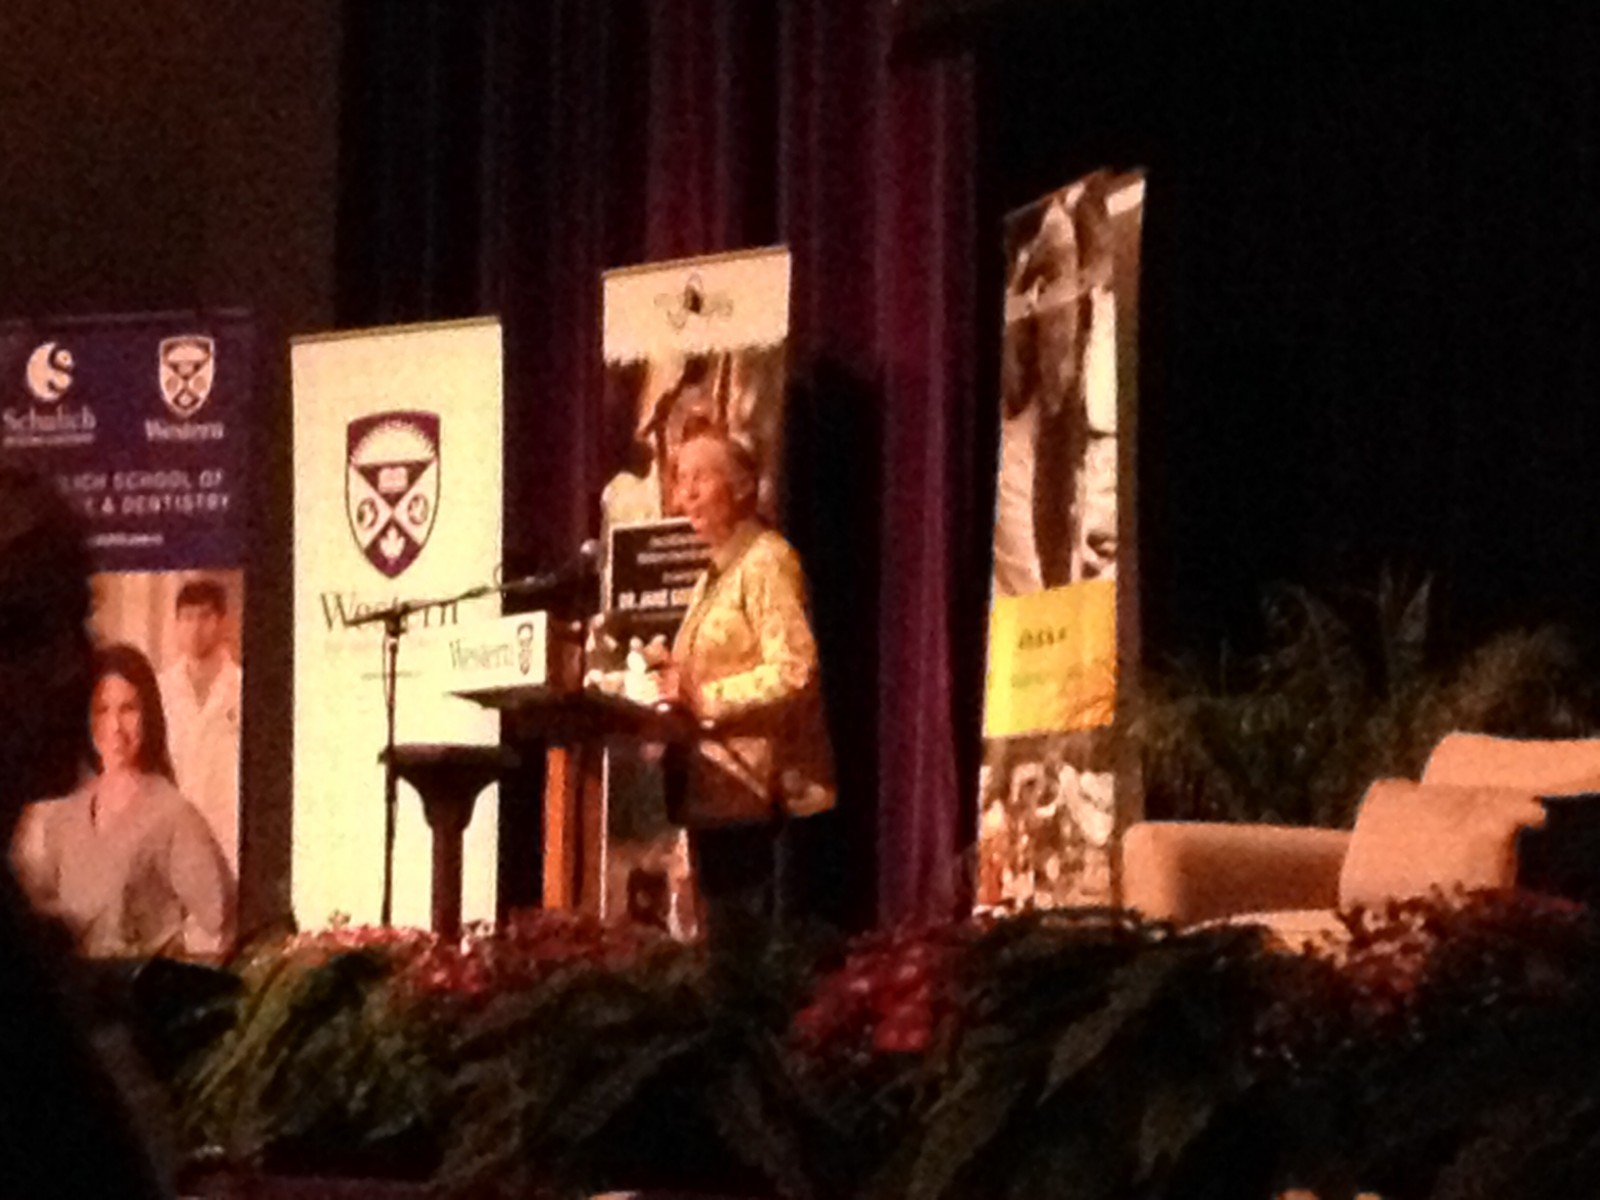 Jane Goodall offers call to action during Western lecture